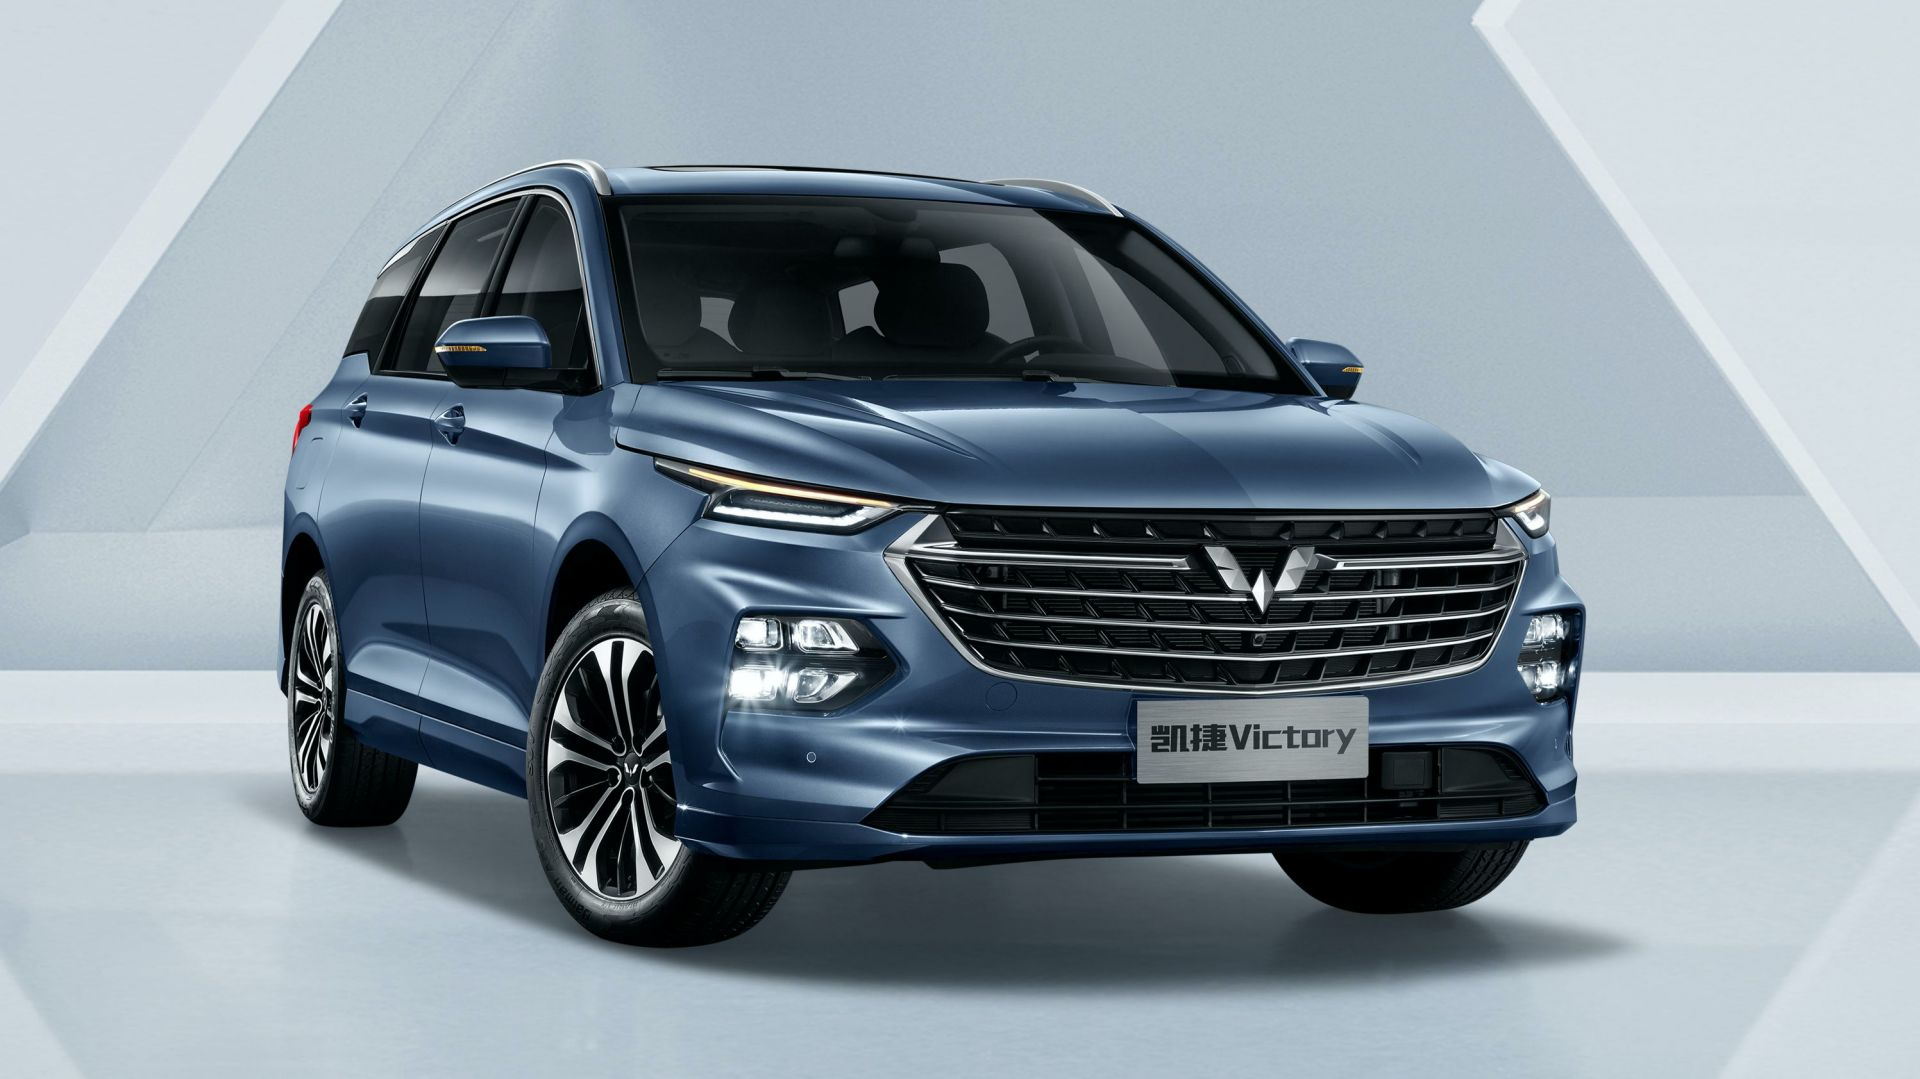 2021_Wuling_Victory_0003